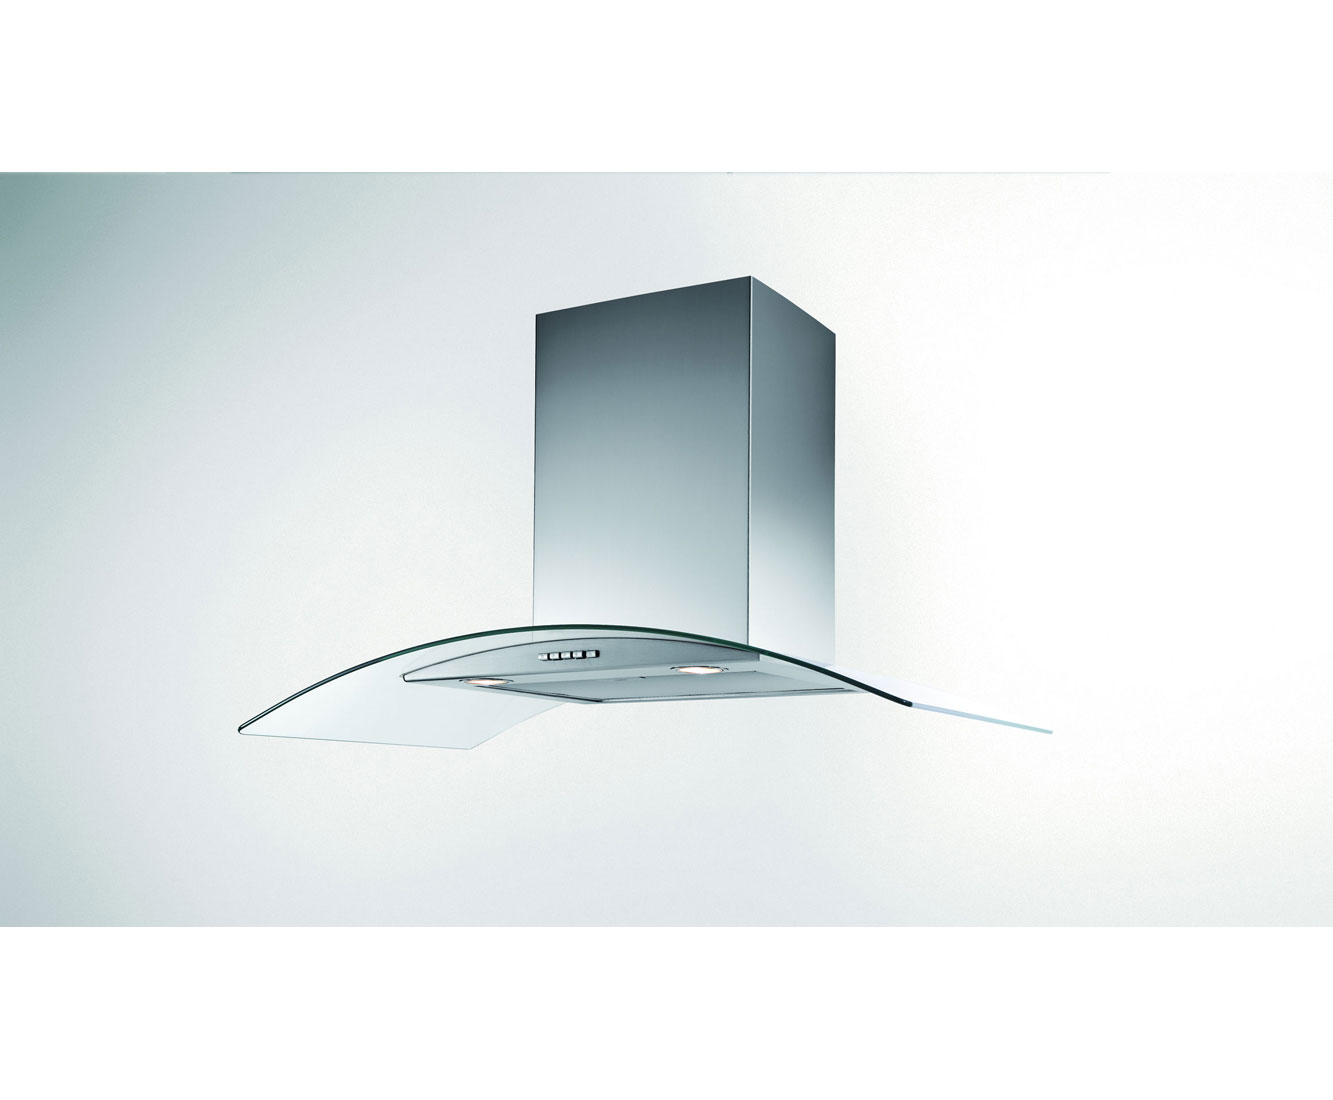 Newworld Unbranded 900CGH Integrated Cooker Hood in Stainless Steel